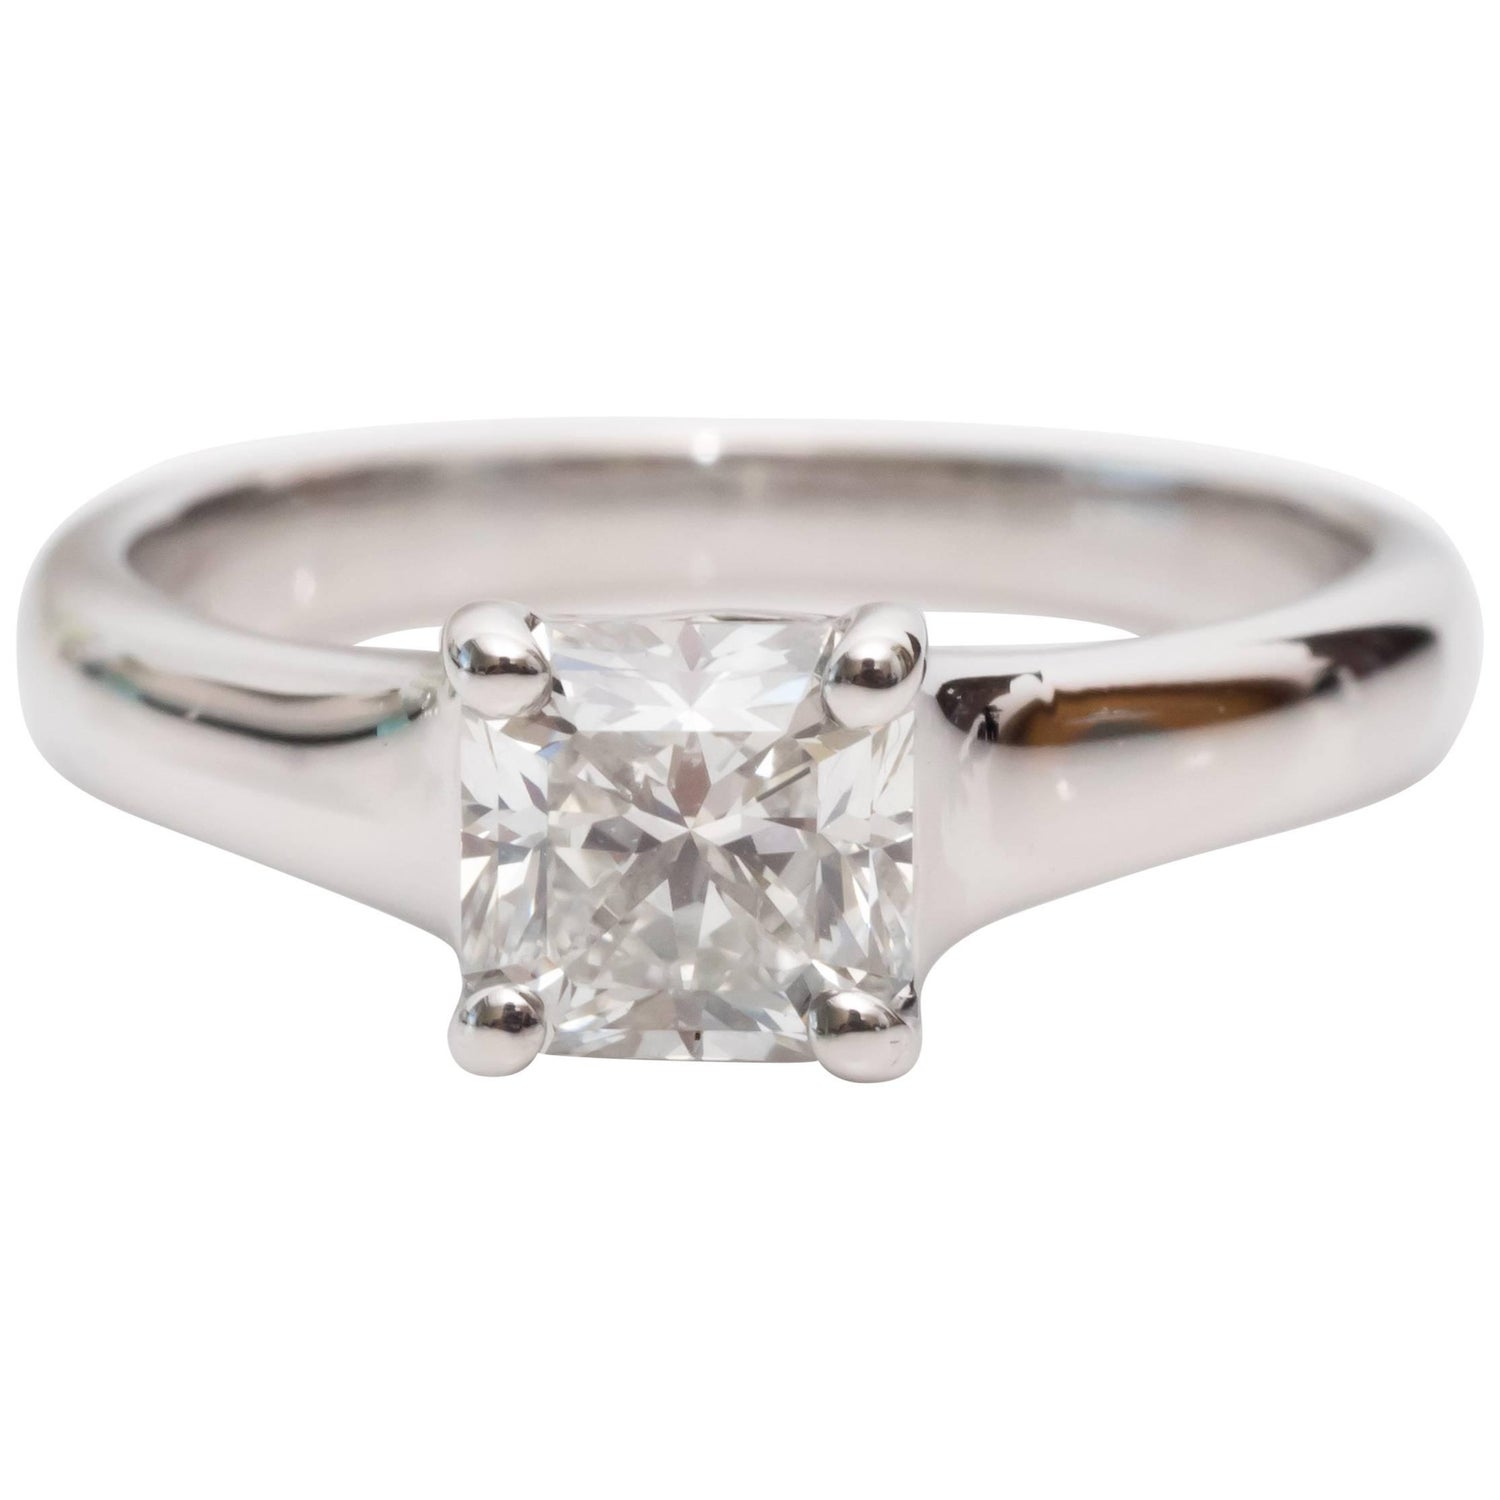 co and estate lucida click diamond enlarge photo to tiffany solitaire platinum carat